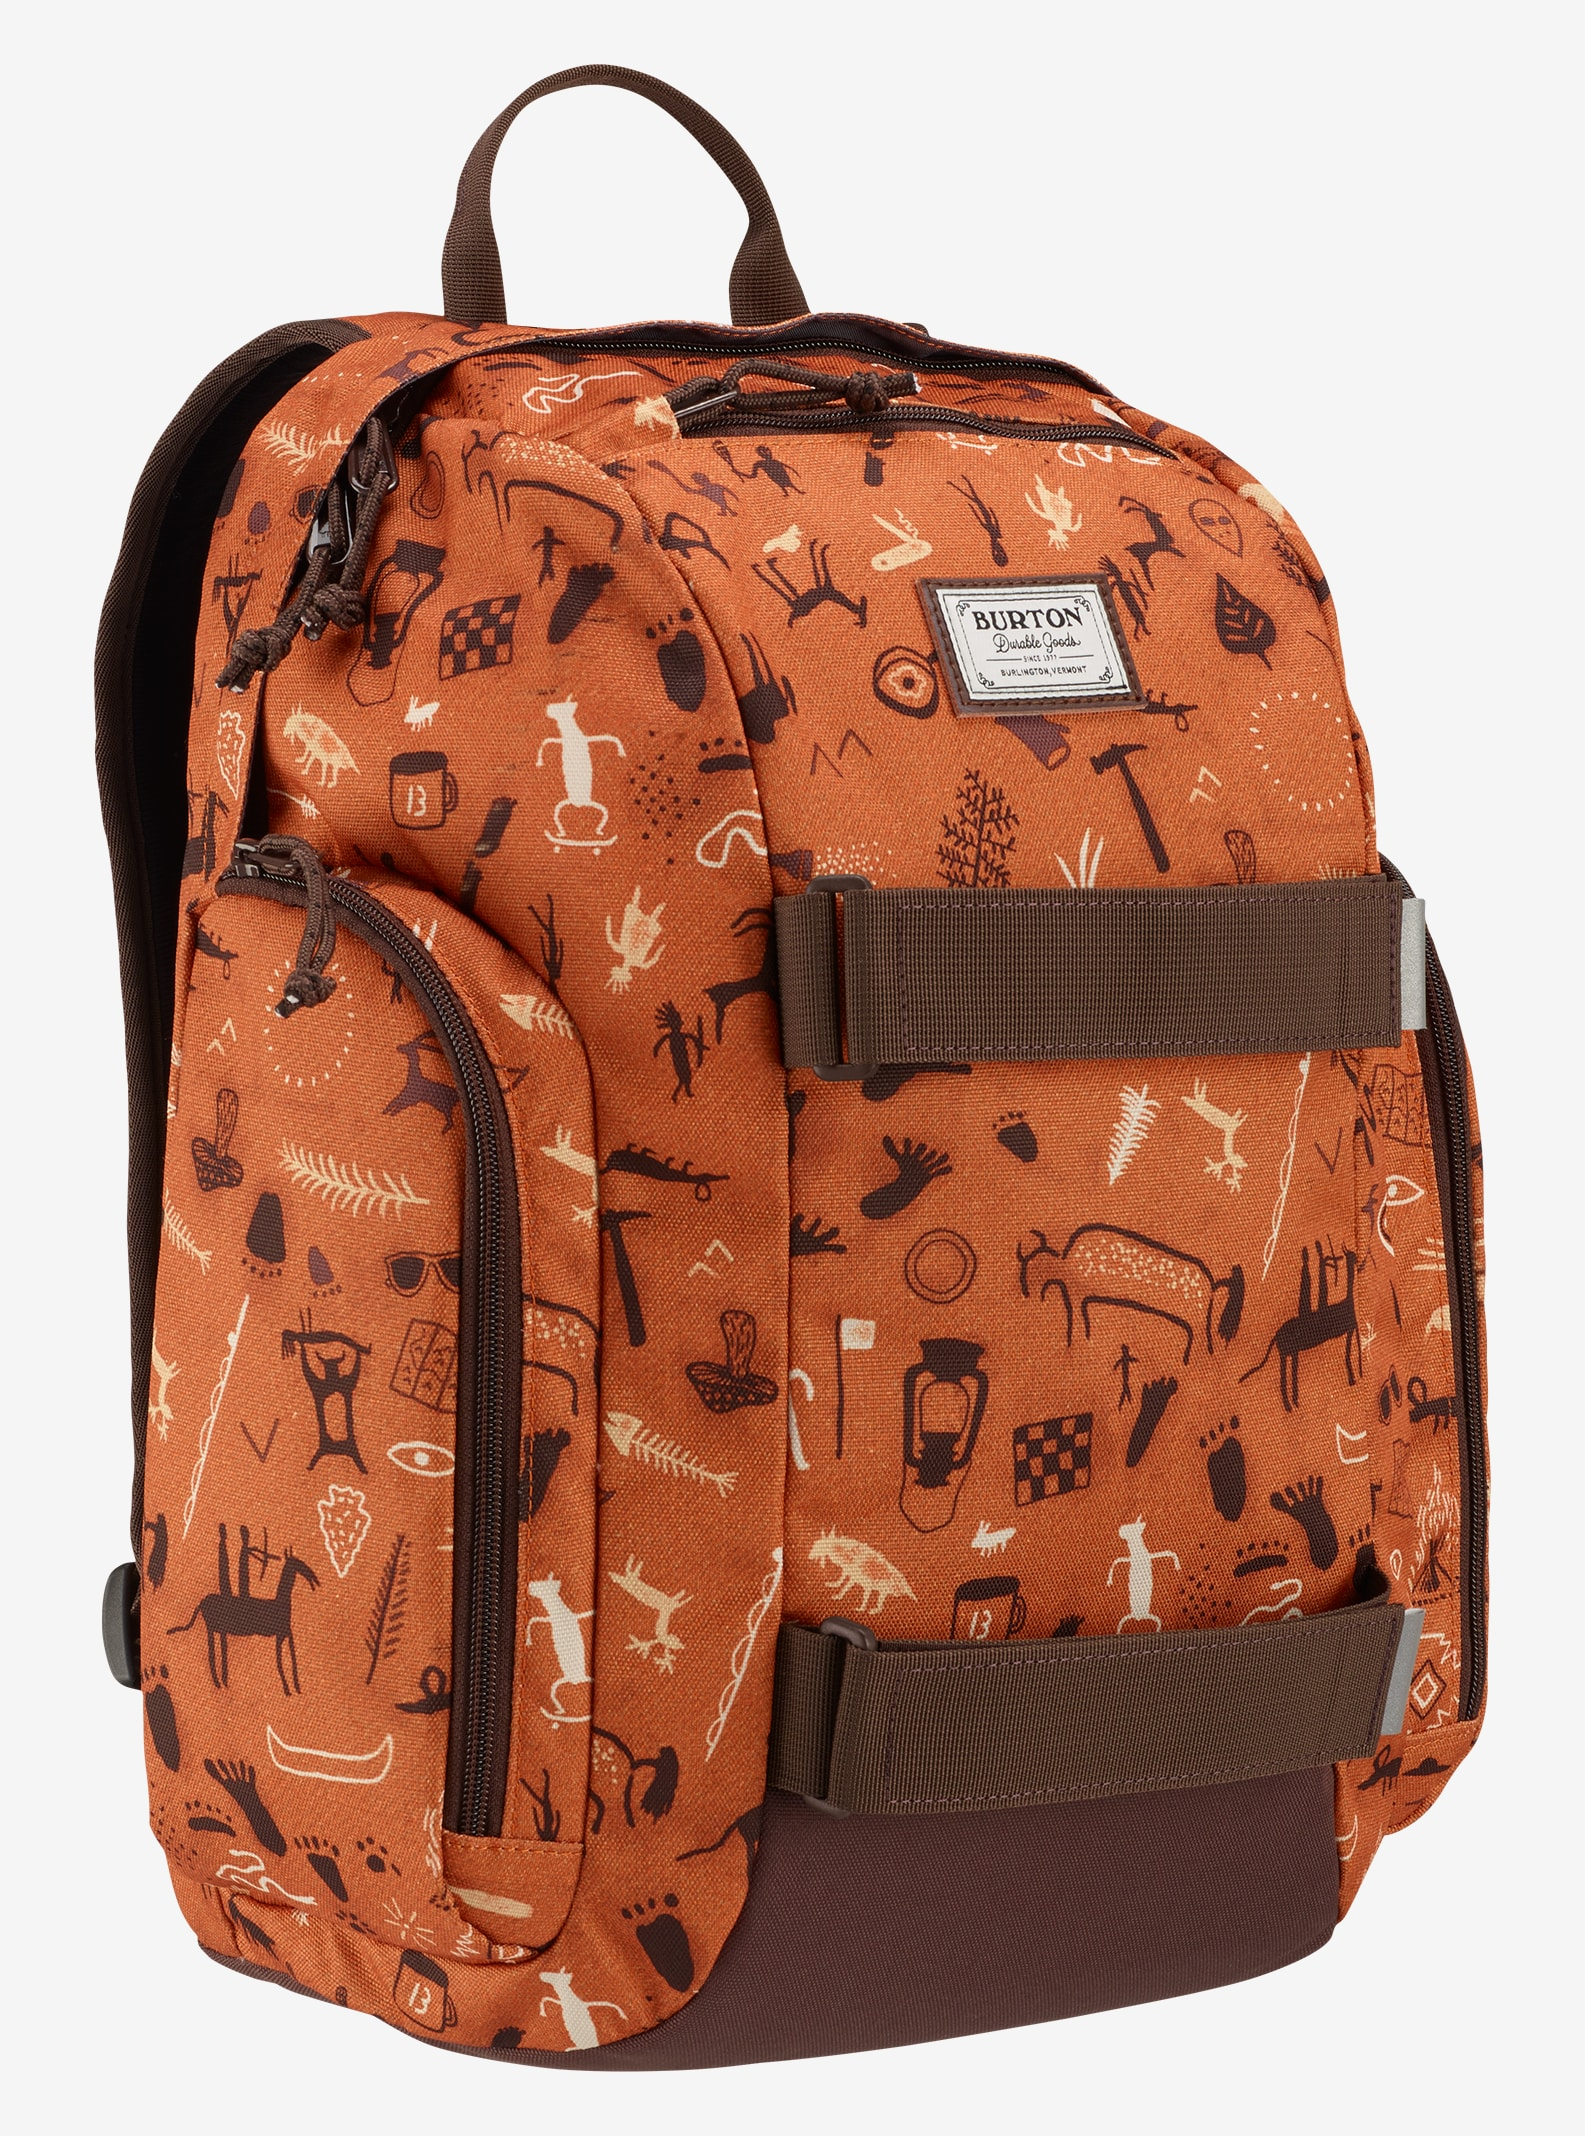 Burton Kids' Metalhead Backpack shown in Caveman Print